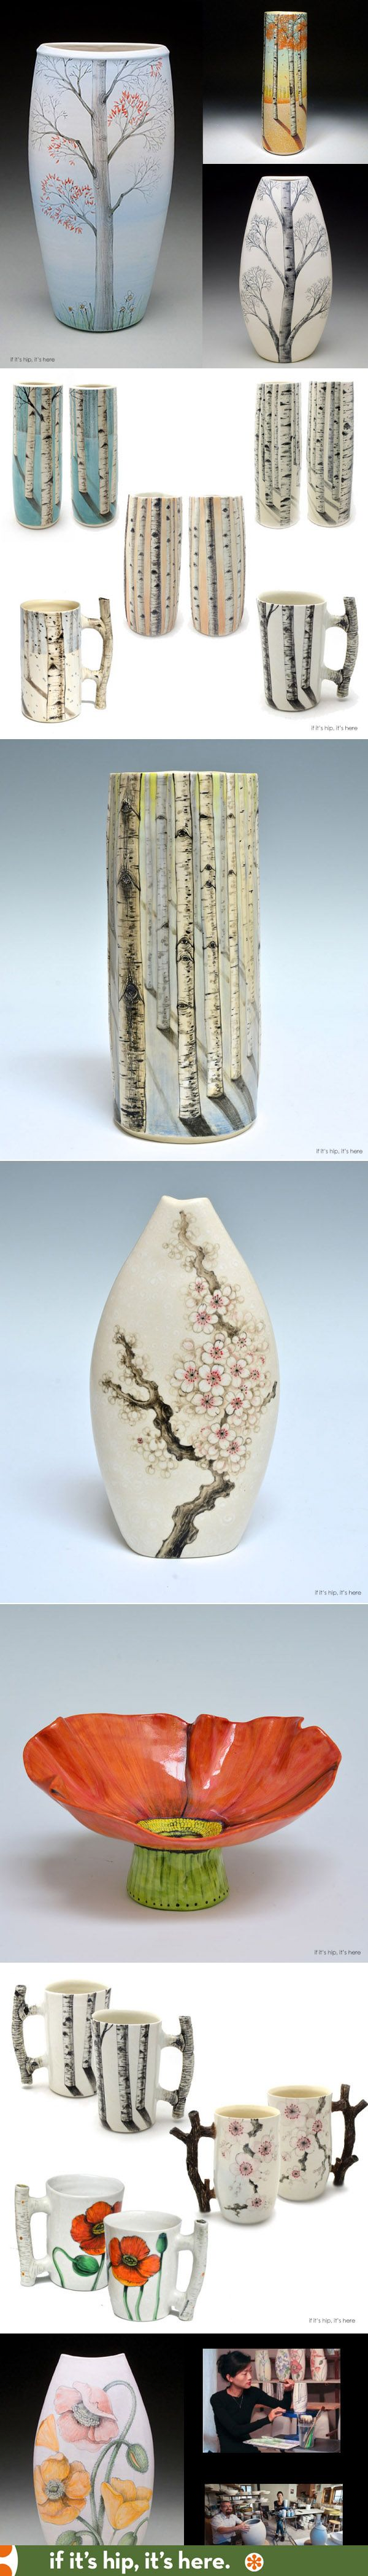 Hand-painted Porcelain by Heesoo Lee at…